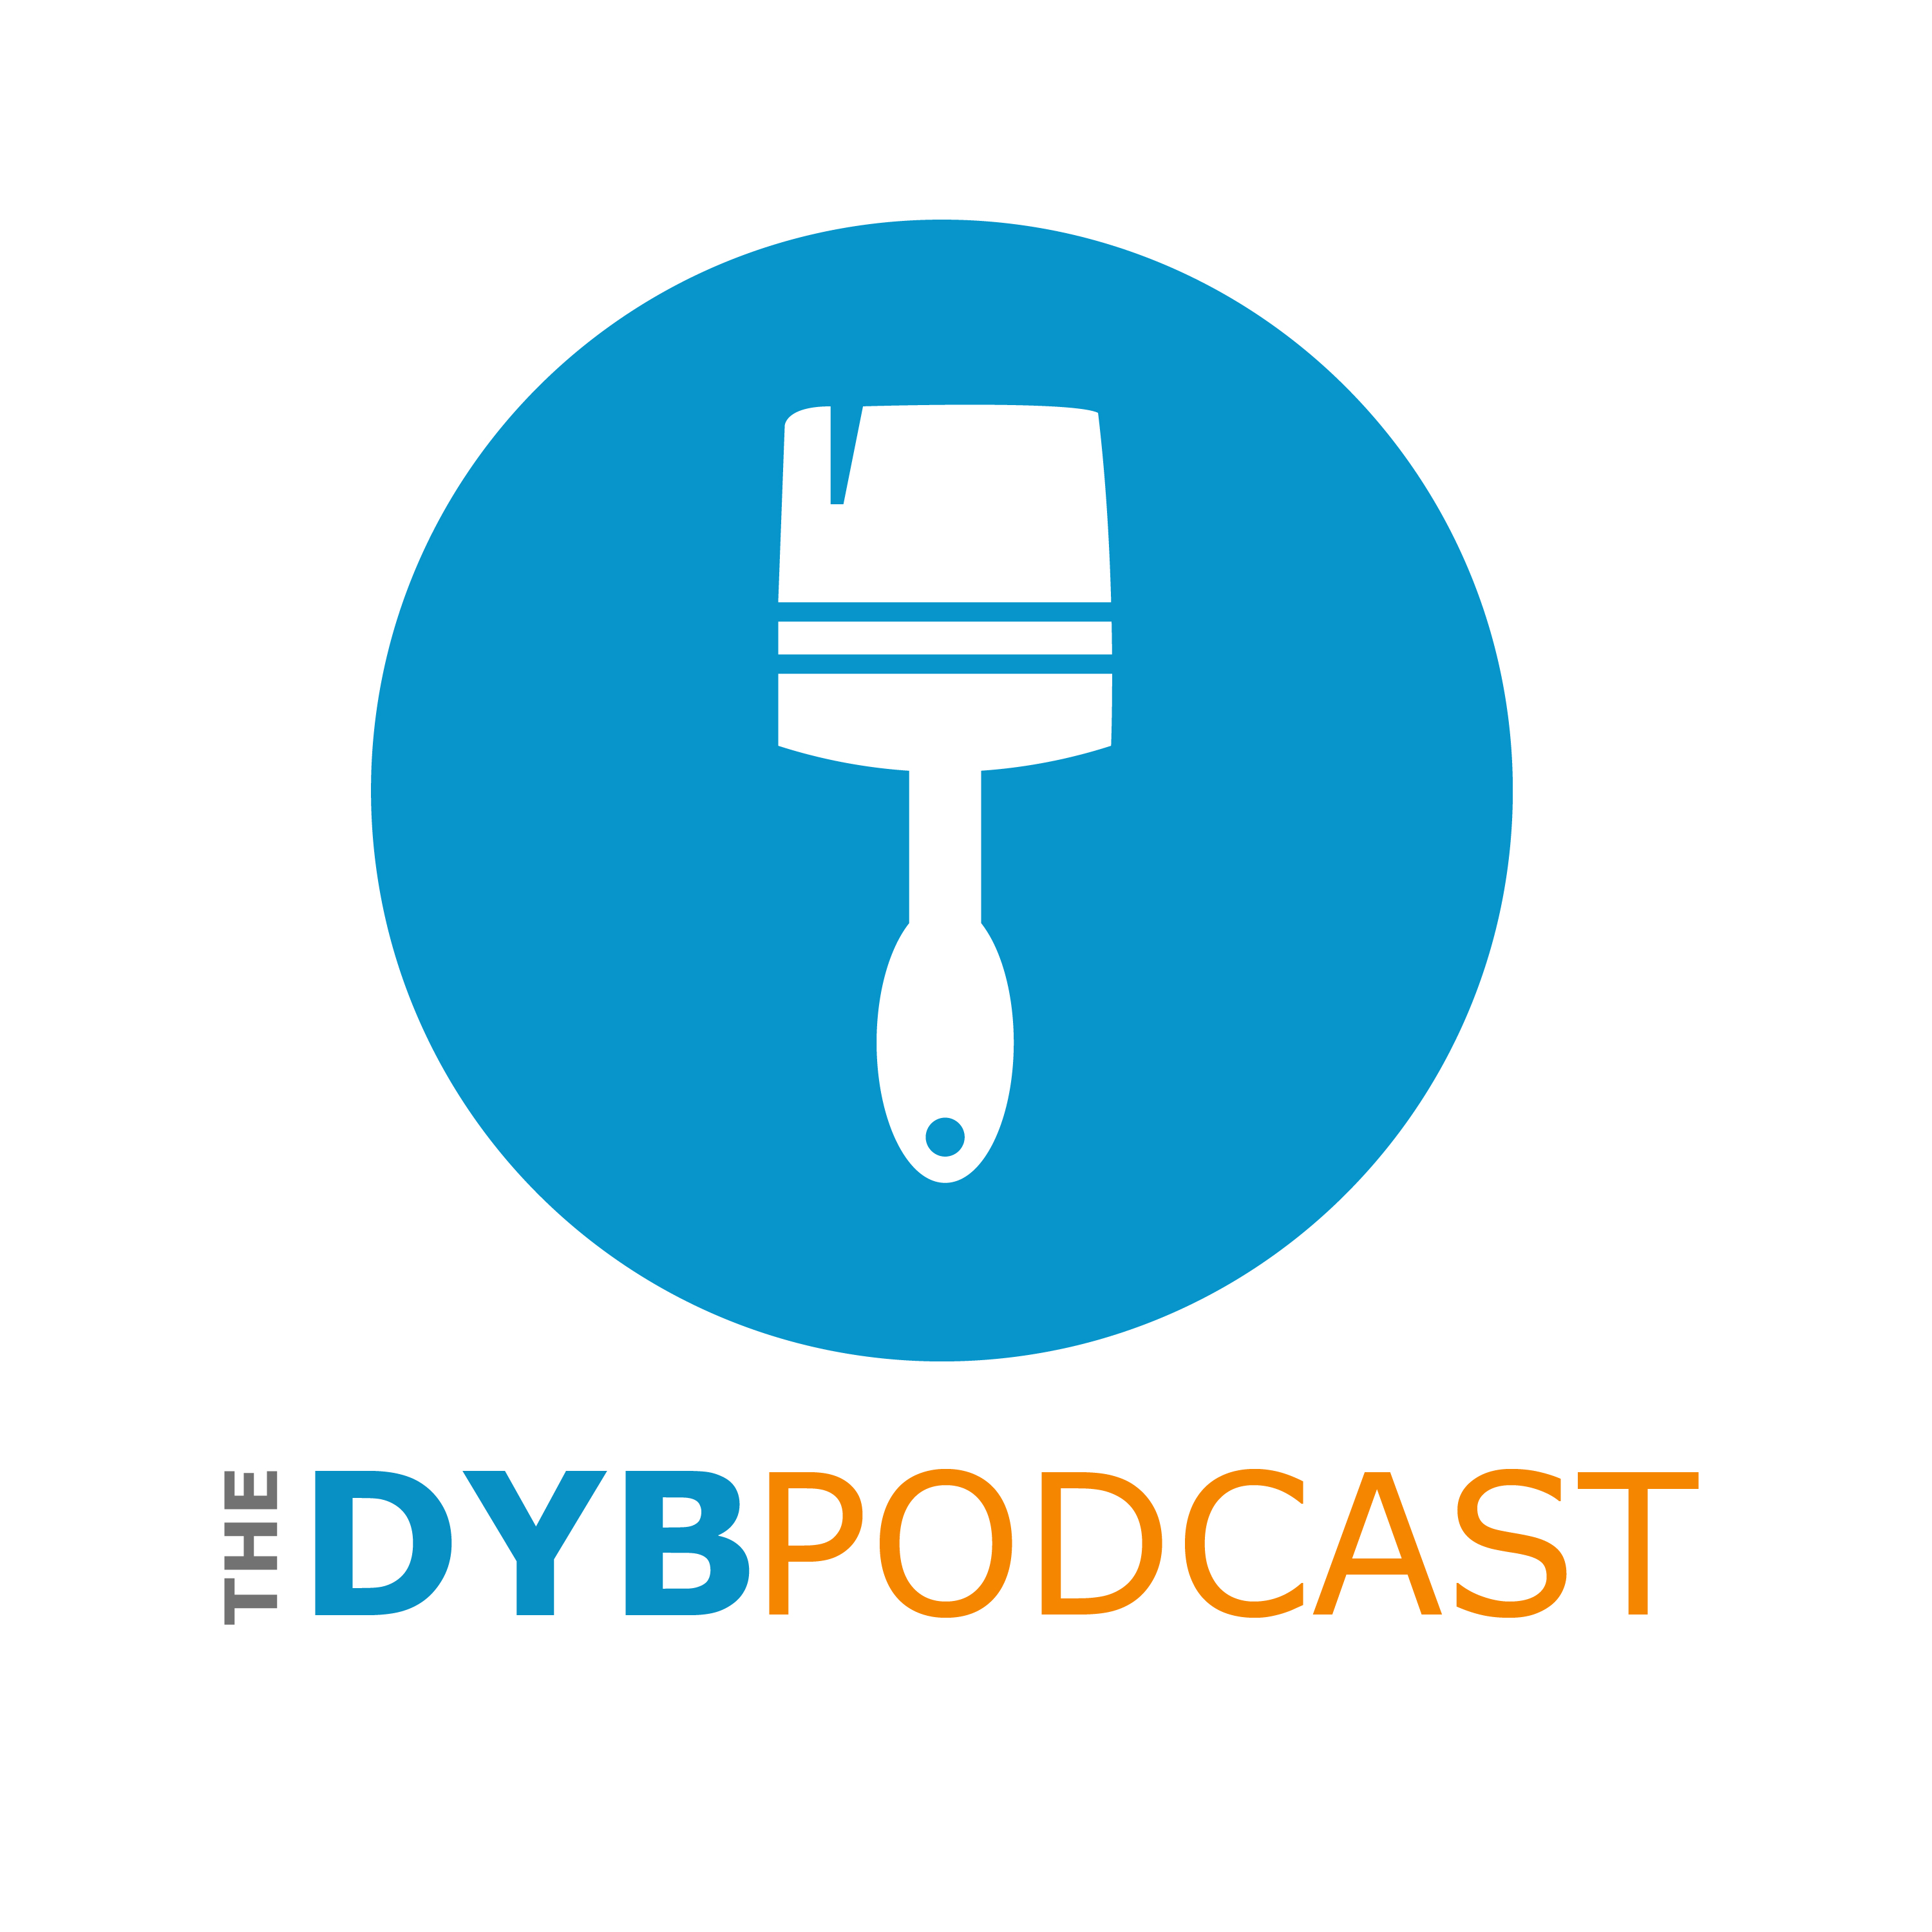 DYB Podcast show art